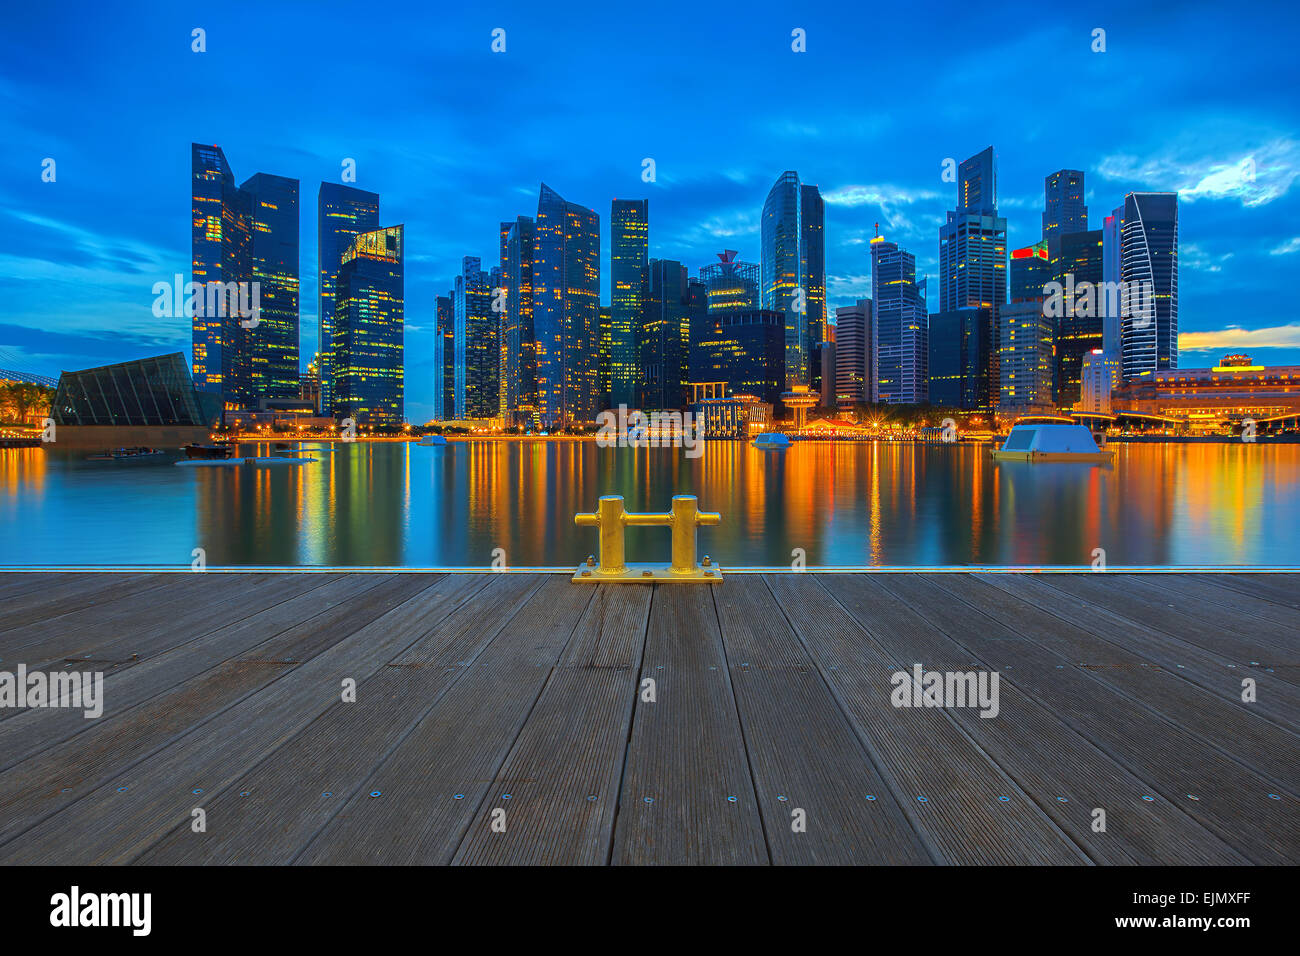 Skyline von Singapur gesehen vom pier Stockbild